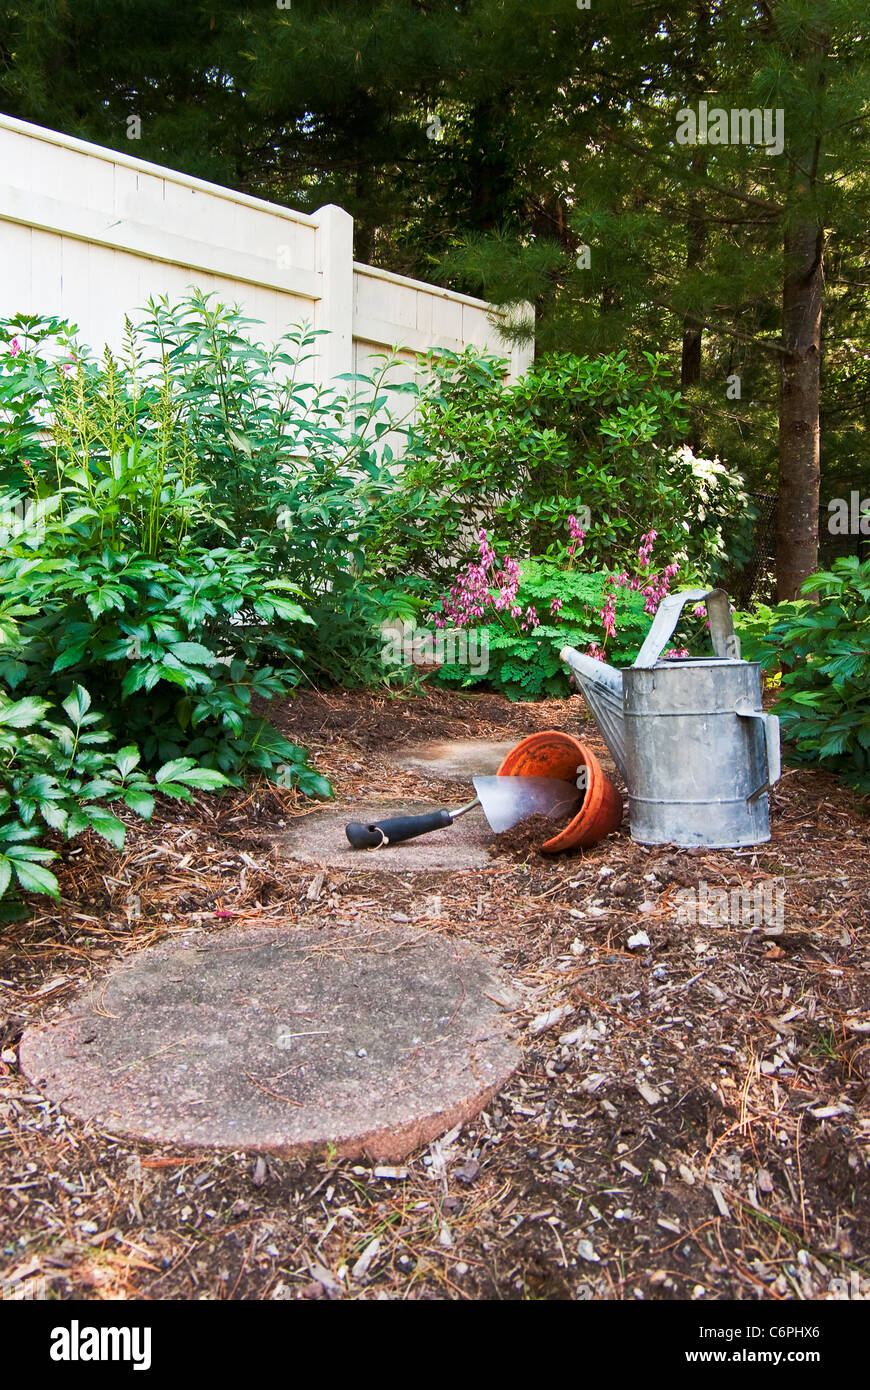 An old watering can sits next to a trowel and clay pot that are ready for flowers Stock Photo